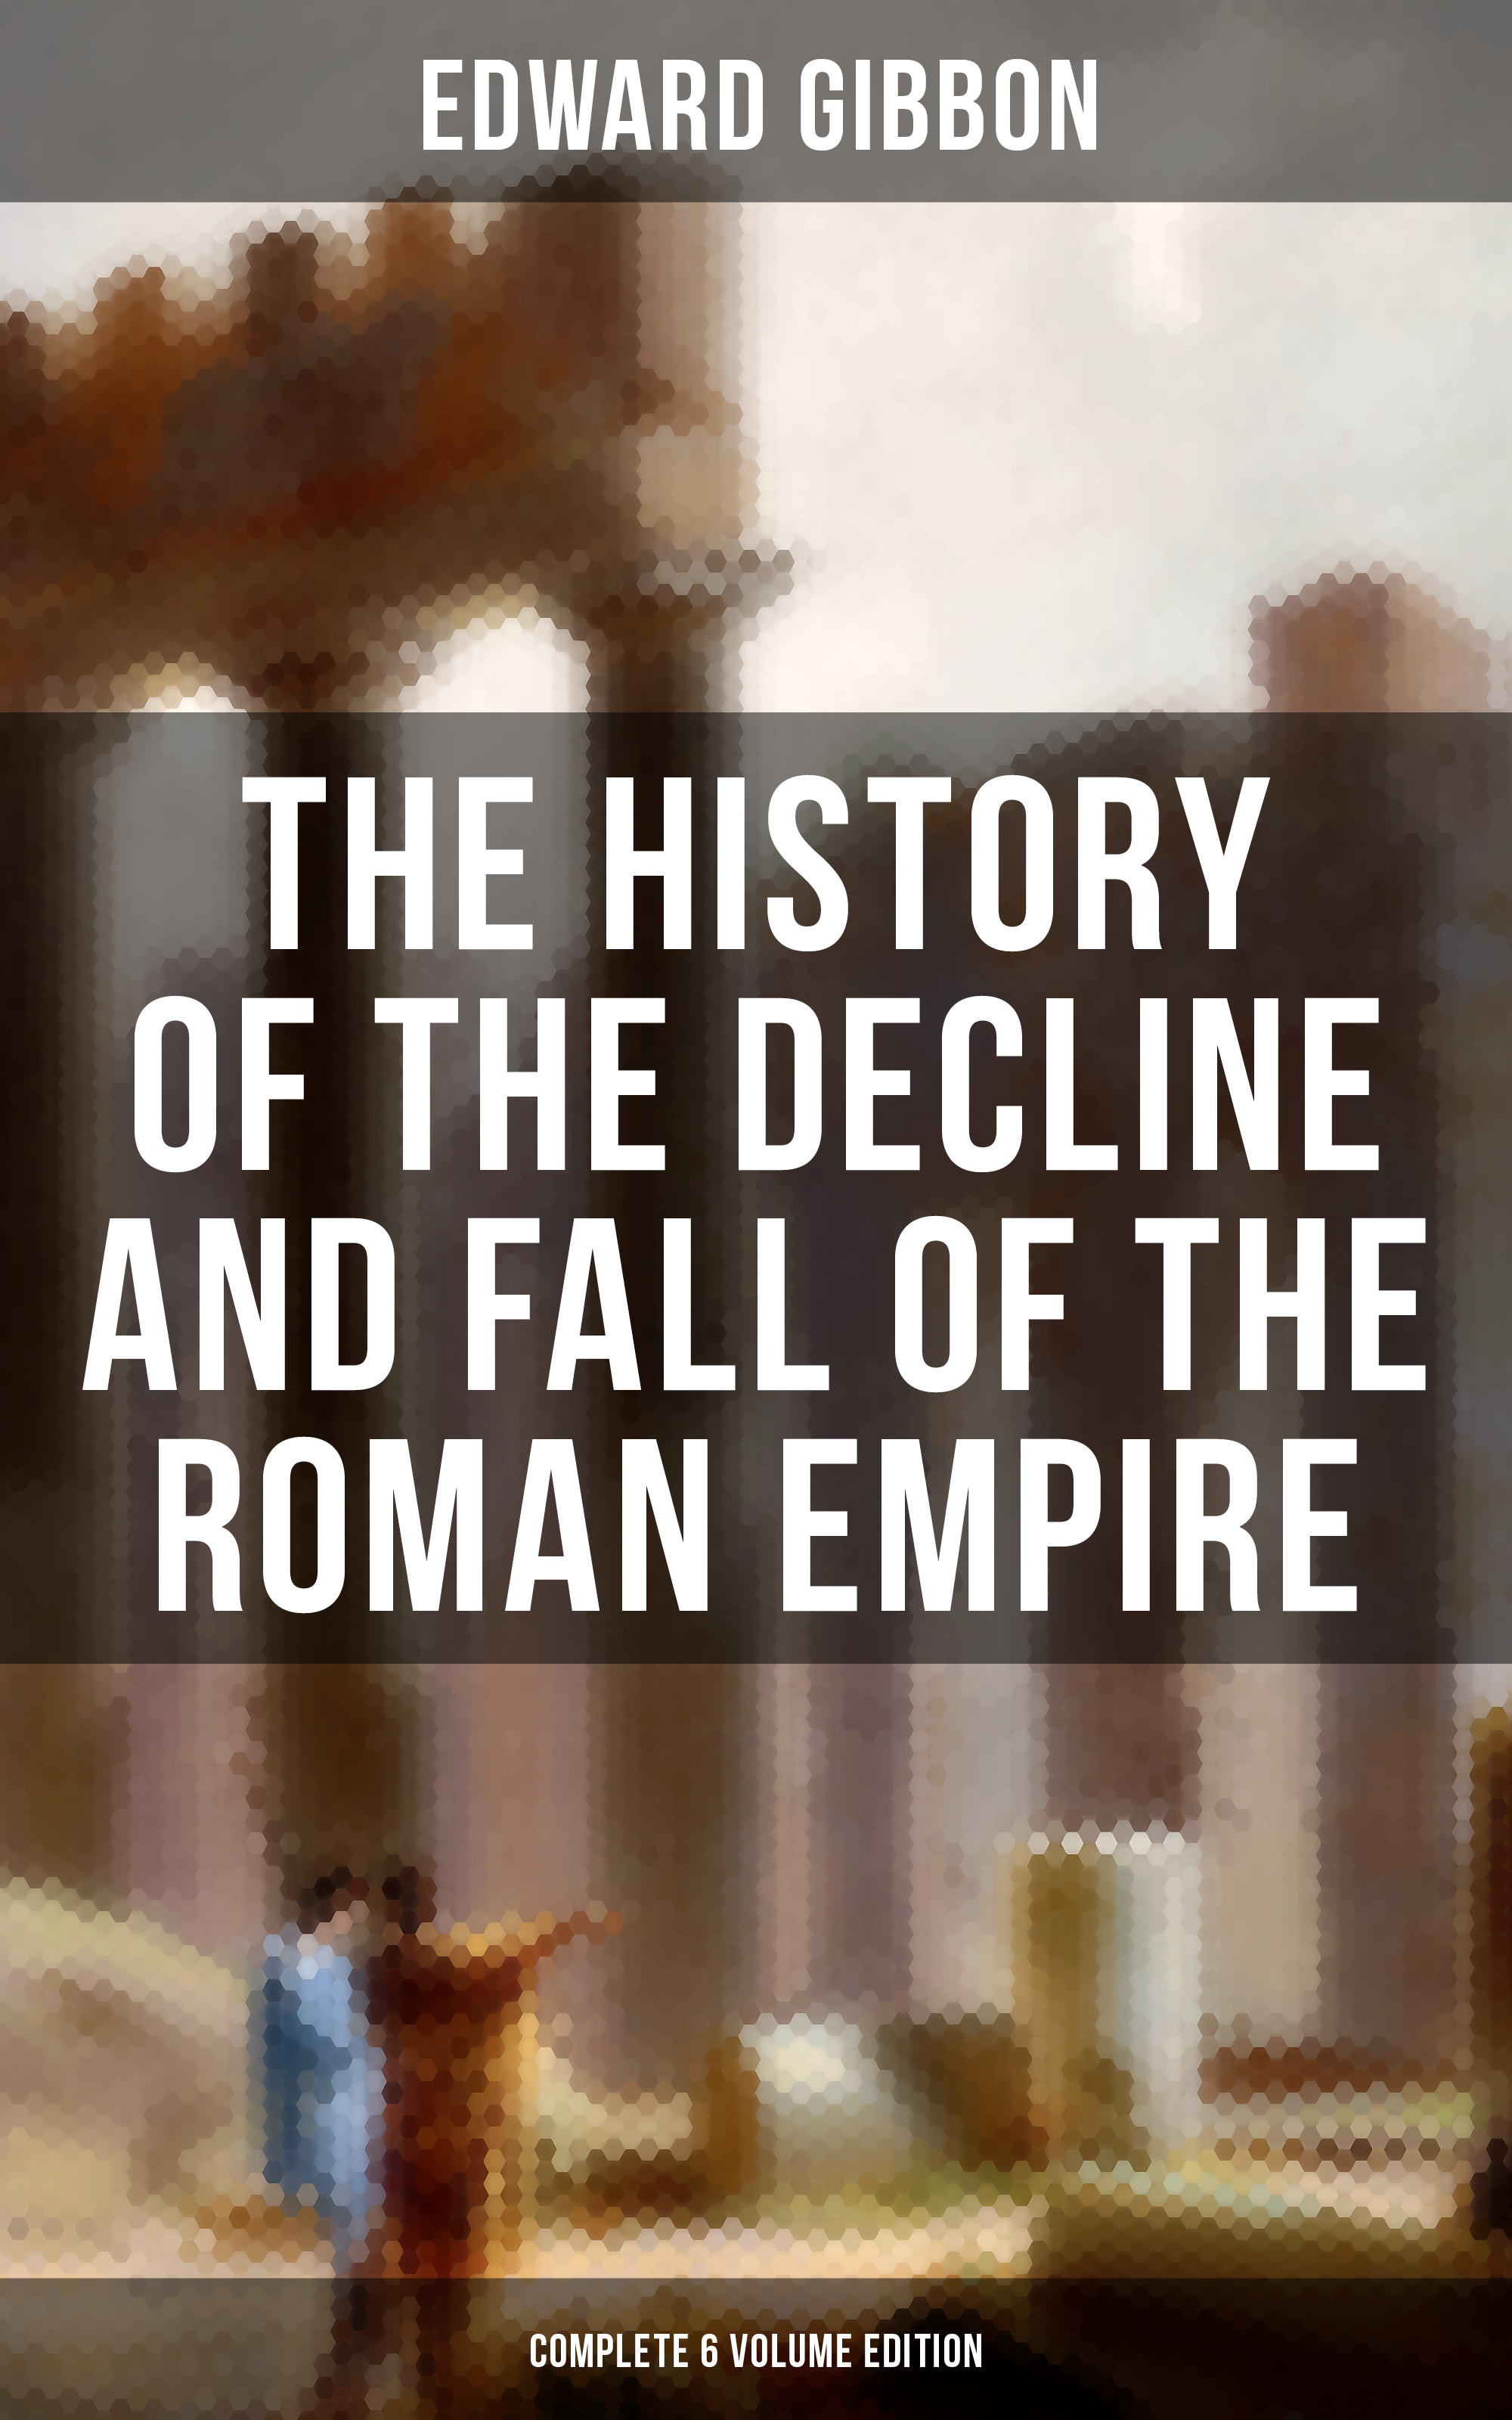 Edward Gibbon The History of the Decline and Fall of the Roman Empire (Complete 6 Volume Edition) hegel the end of history and the future